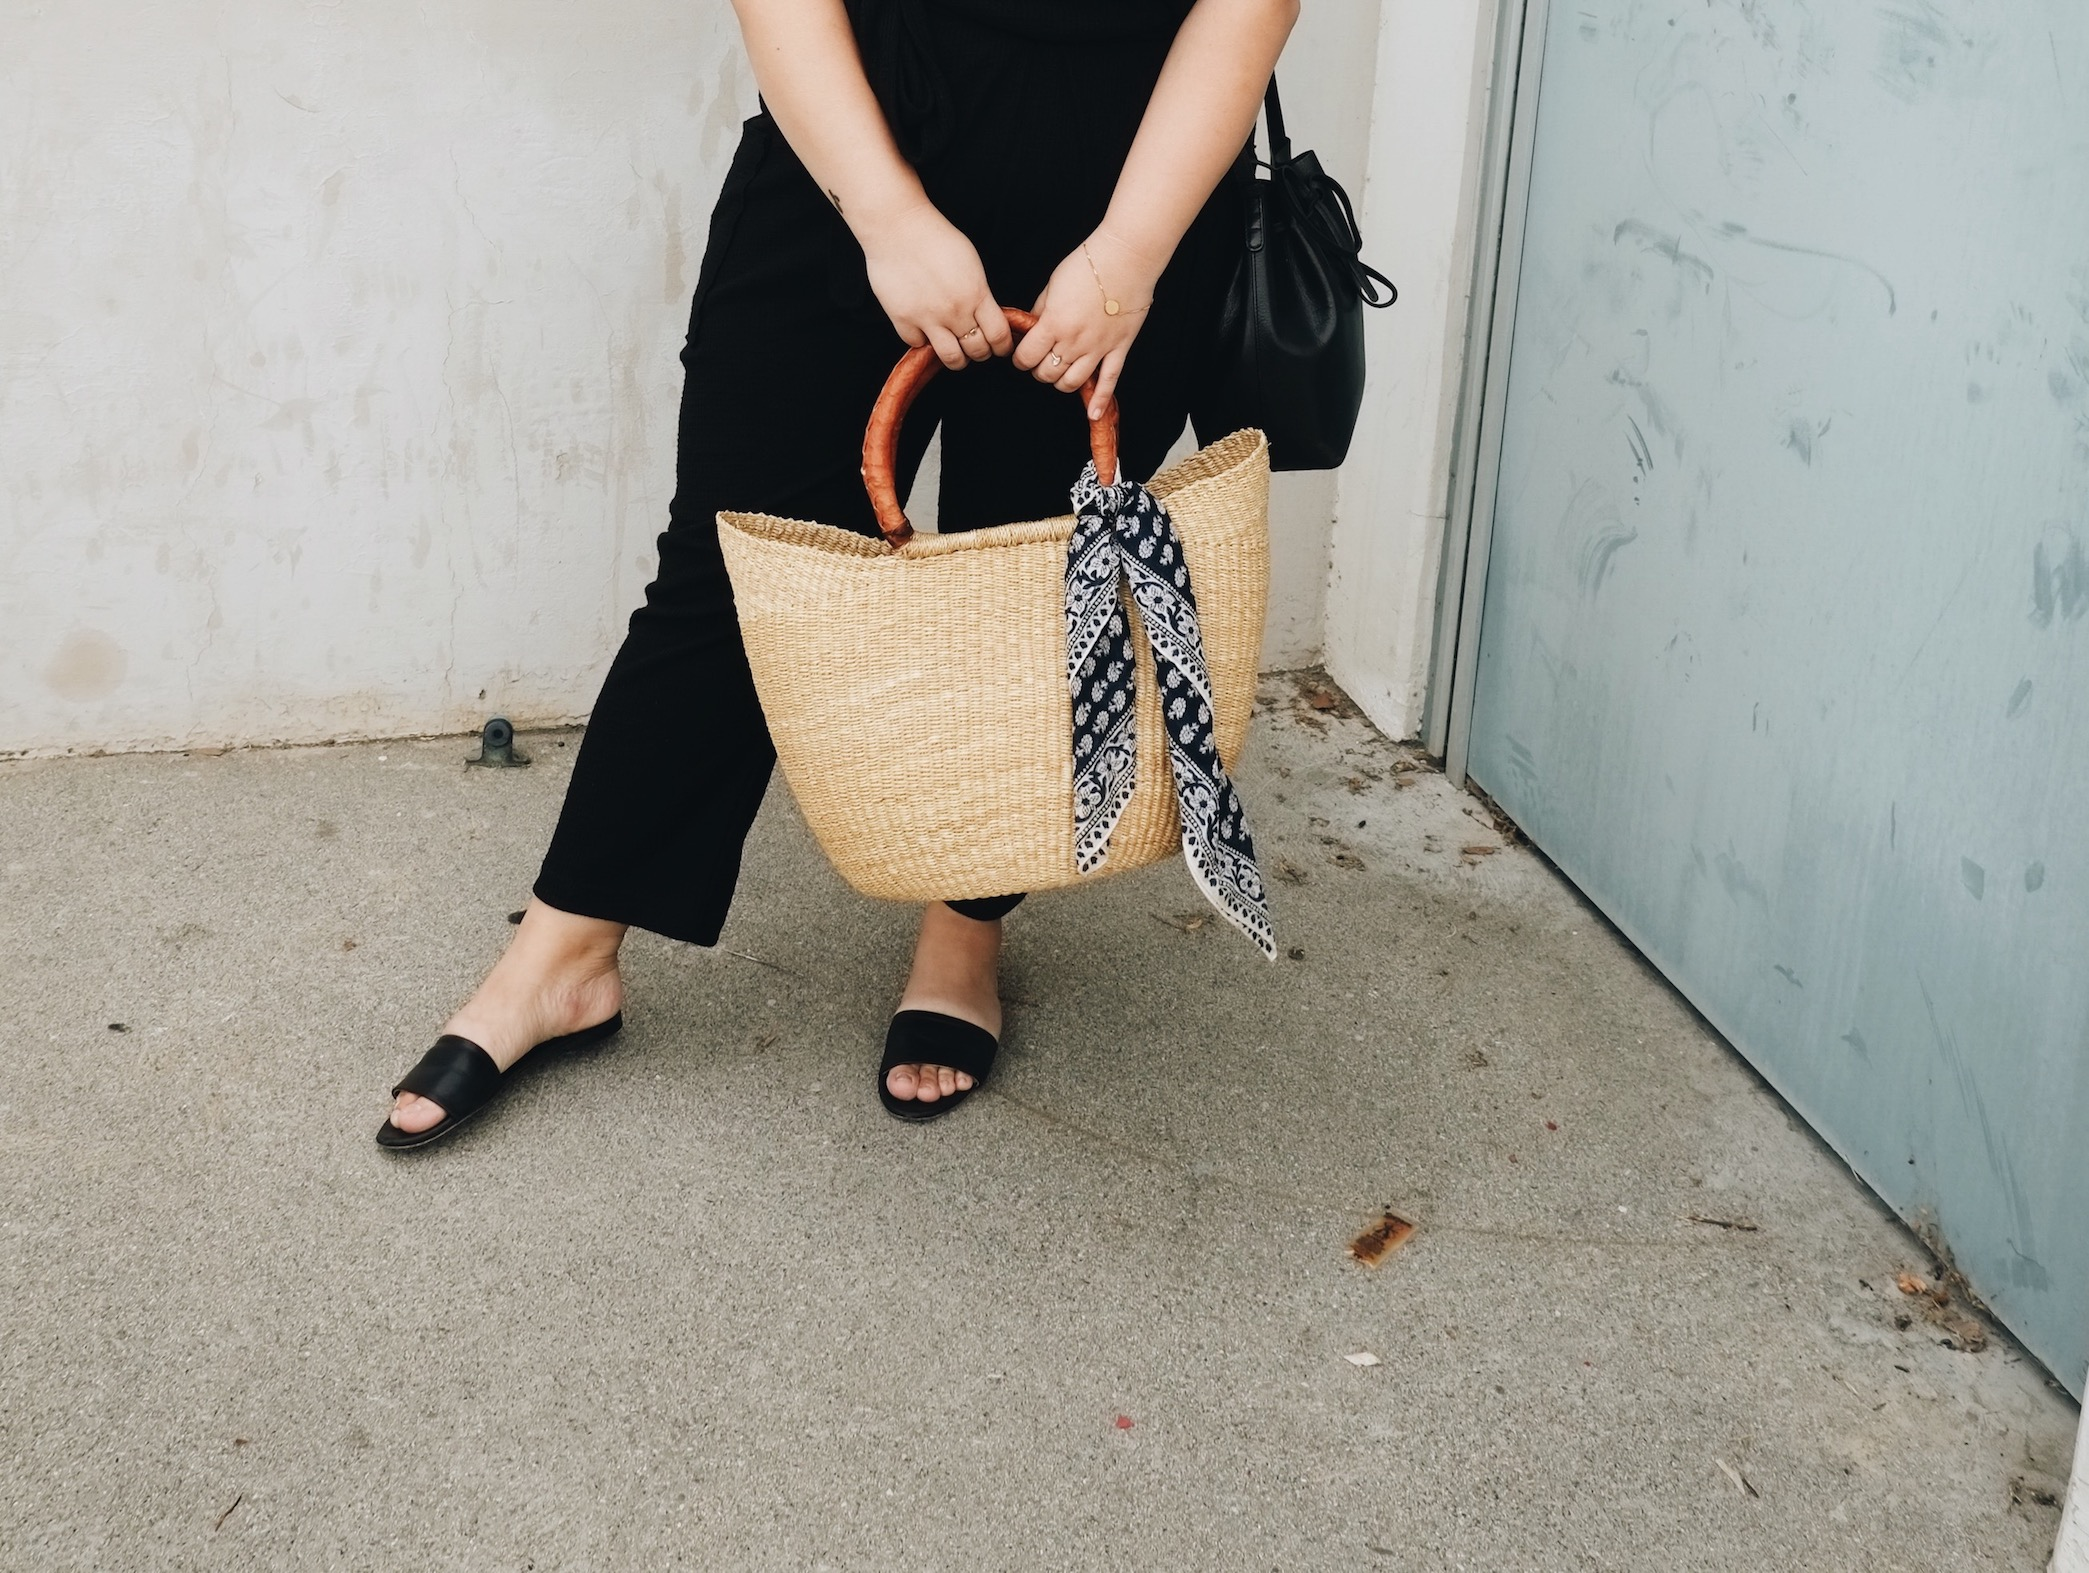 Woven basket bag for Sunday Farmer's Market // A Week Of Minimalist Uniform Outfits With Jasmine Hwang From The Pleb Life on The Good Trade